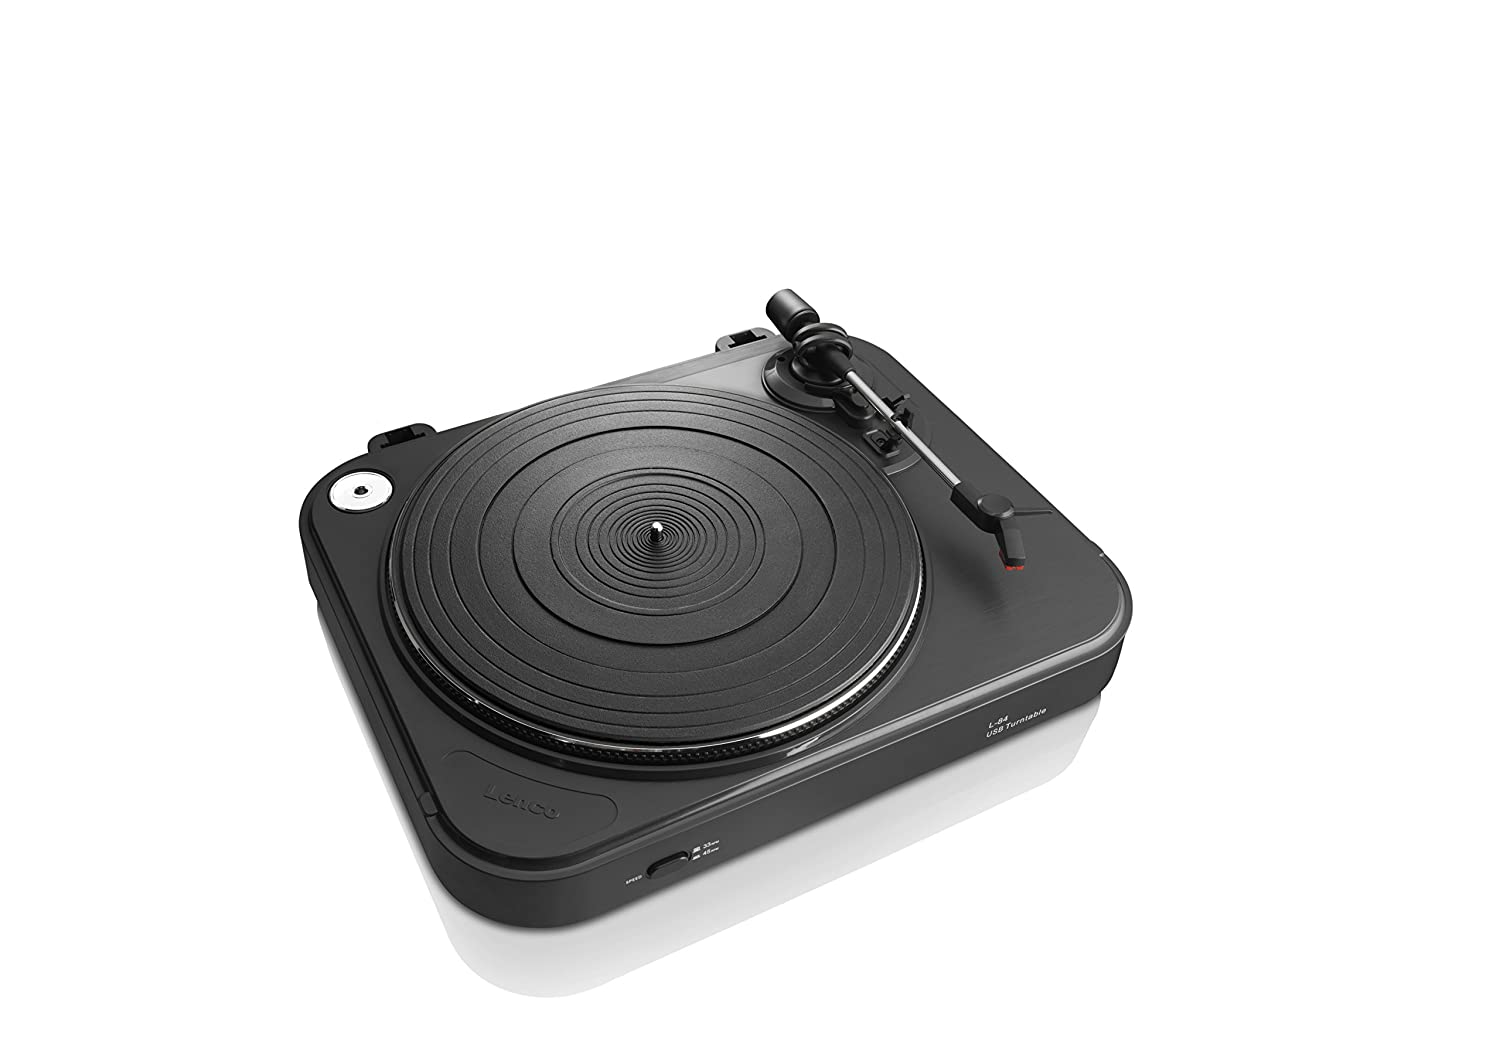 60df0d95f27f5 Lenco L-84 USB Record Player with USB Connection  Amazon.co.uk  Electronics